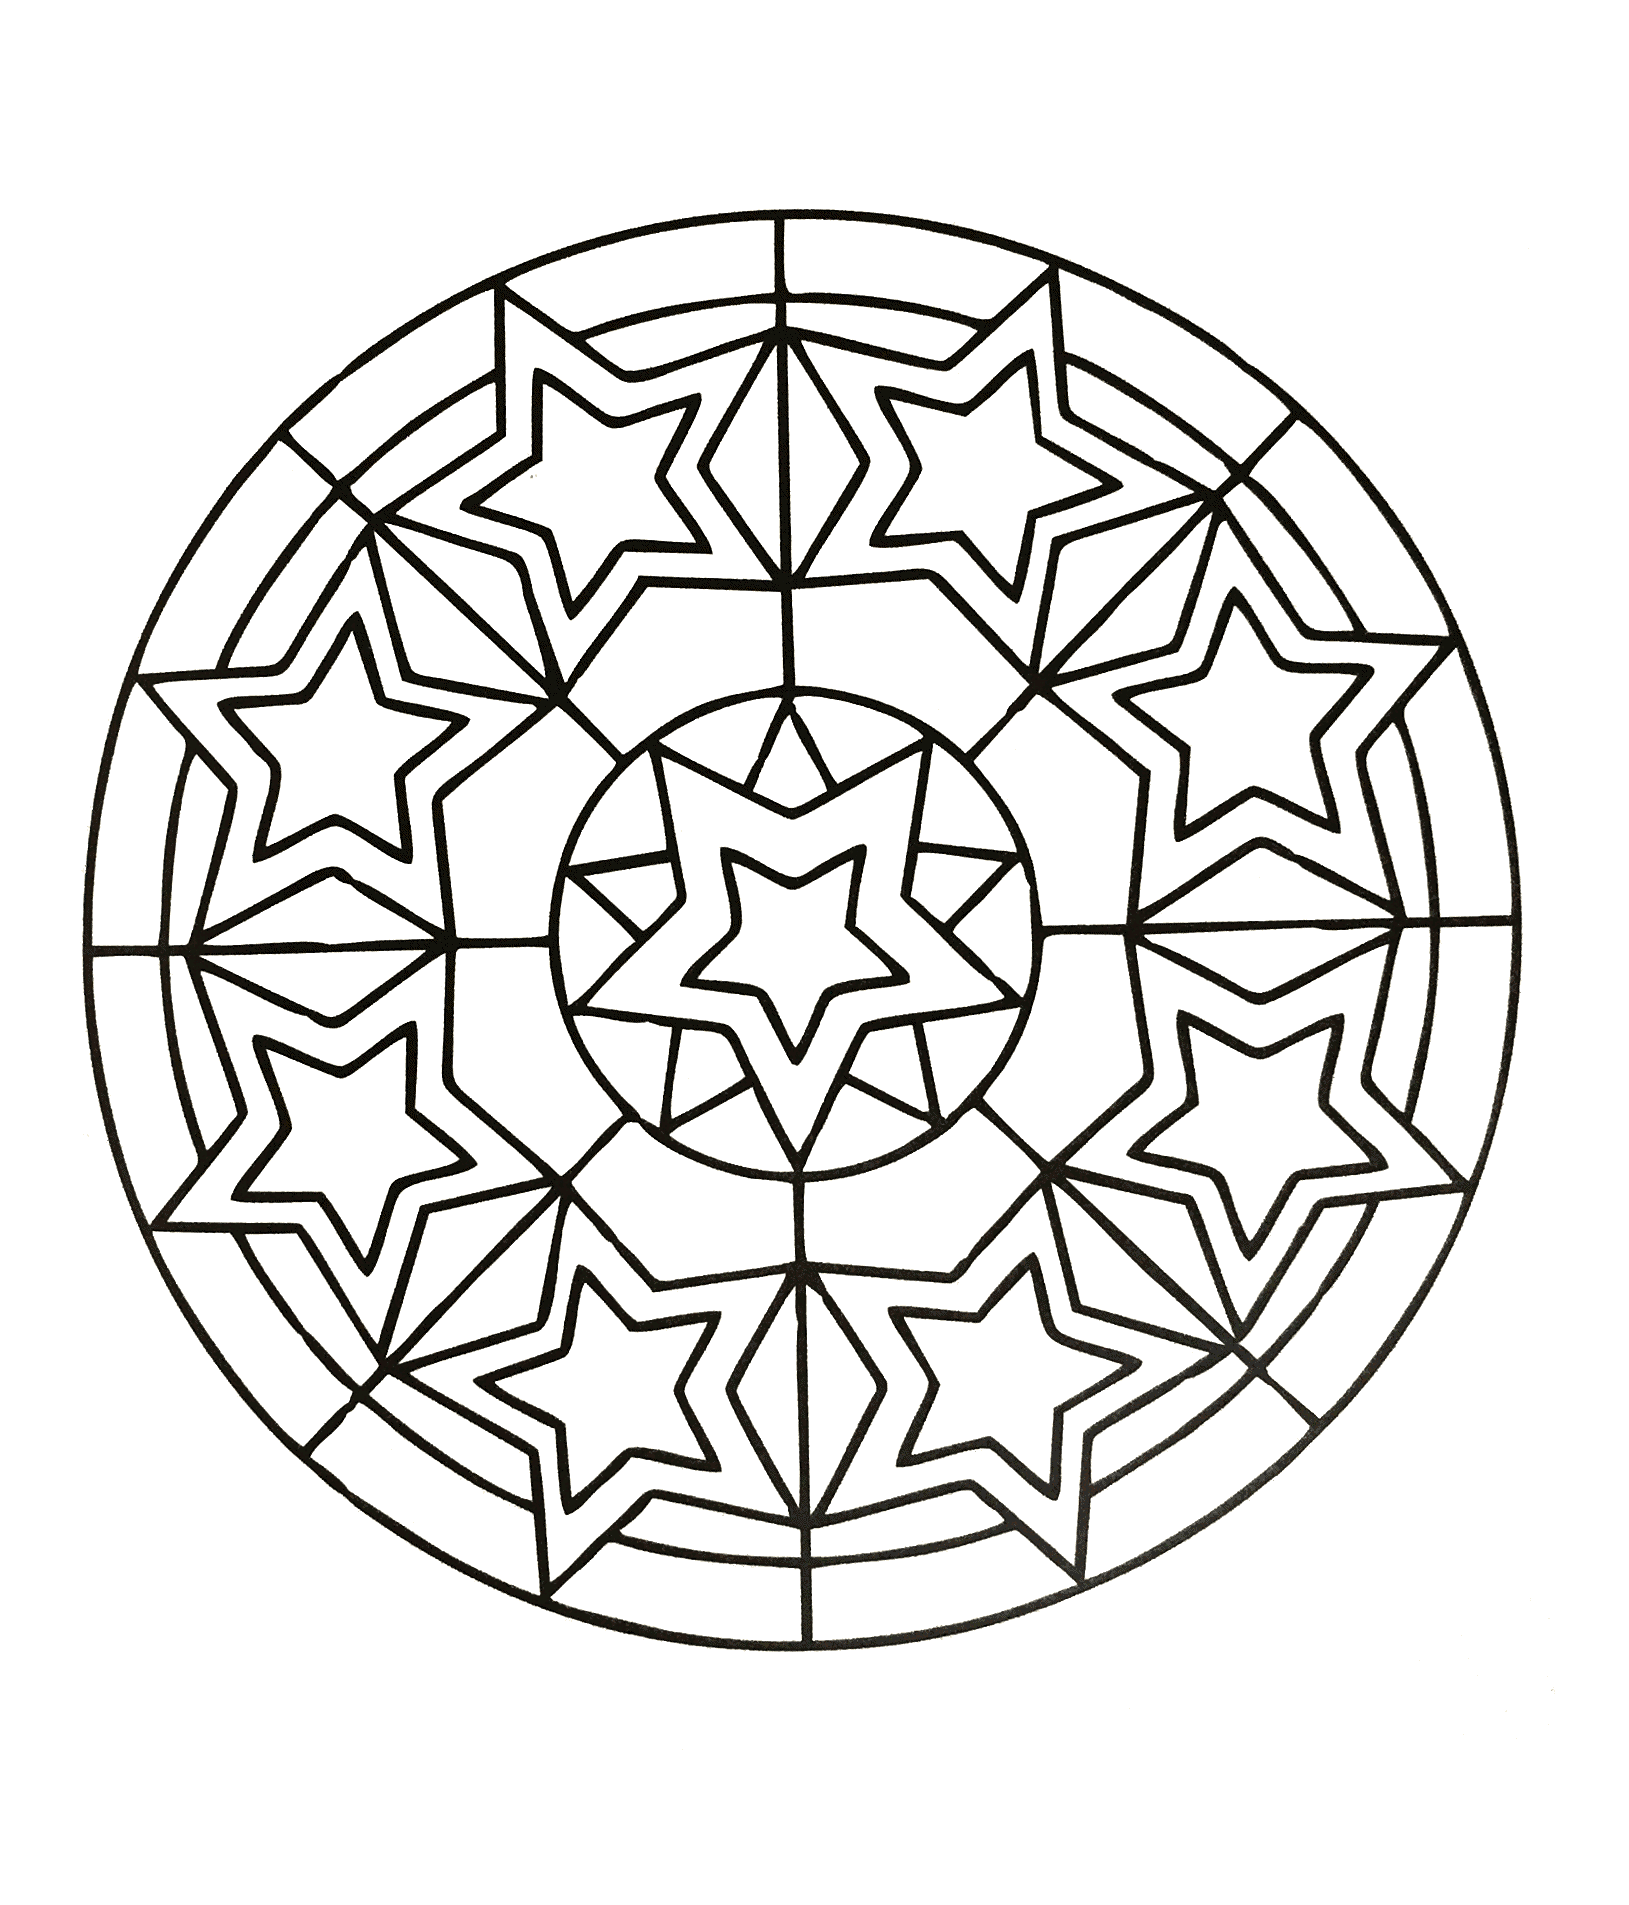 A Mandala guaranteed 100% Relaxation, for a pure ZEN moment. You will quickly feel the benefits of coloring. The symbolic significance of the mandala relates to the idea of totality and wholeness.